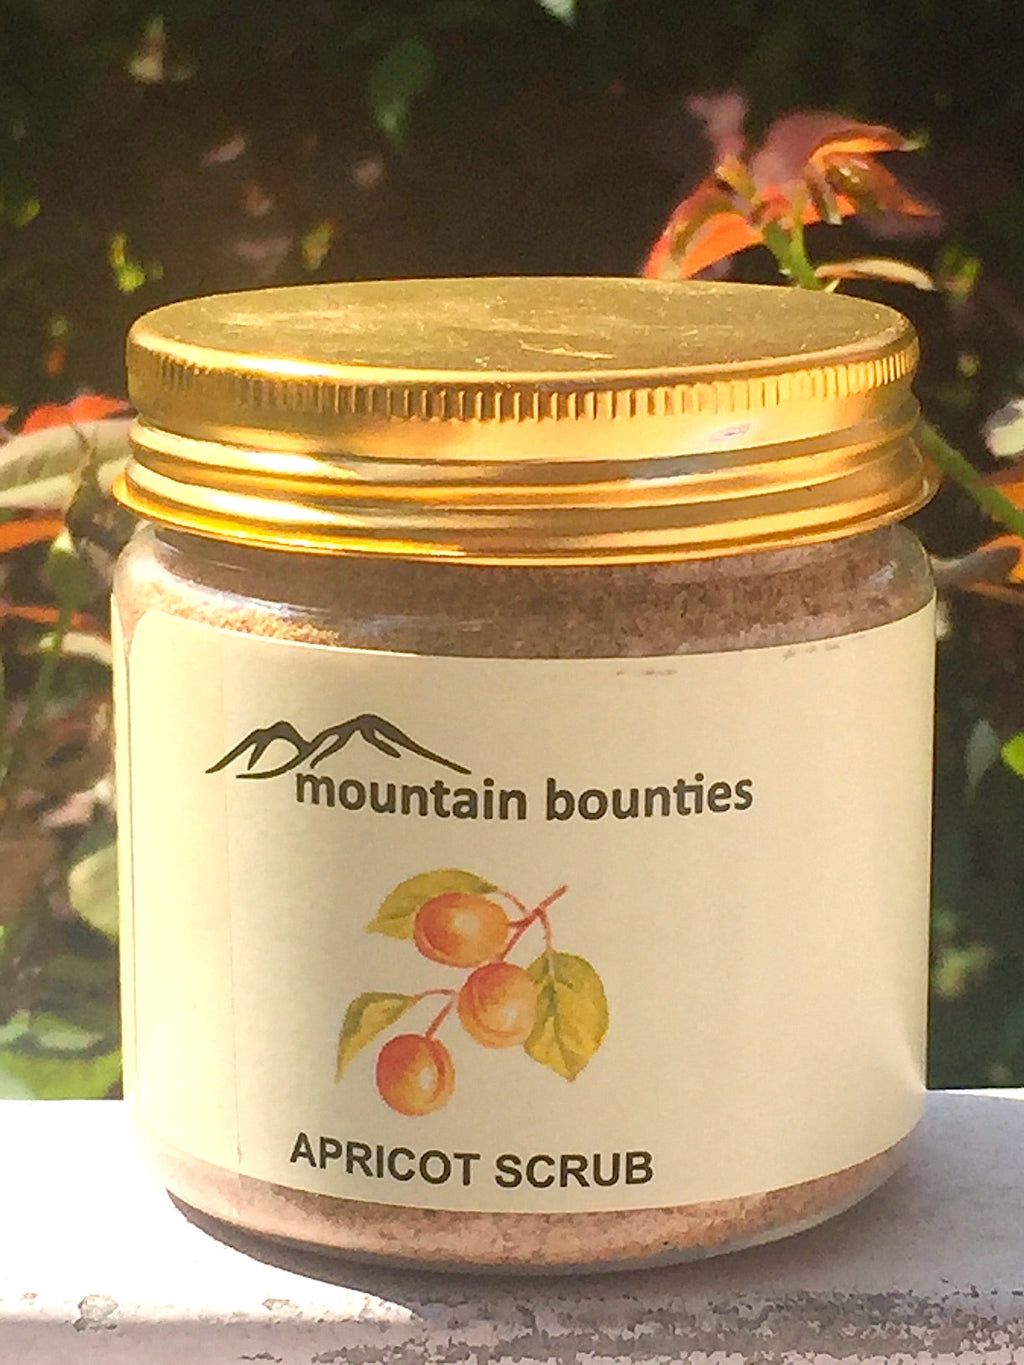 "Hand pounded Apricot kernel granules gently scrubs the skin to remove dead skin cells and blackheads without scratching or irritating the skin. This is a ready to use exfoliant like traditional homemade ""skin friendly"" remedies. It has traces of apricot oil to keep skin moisturised and prevent unnecessary drying of skin. No chemicals, no preservatives."